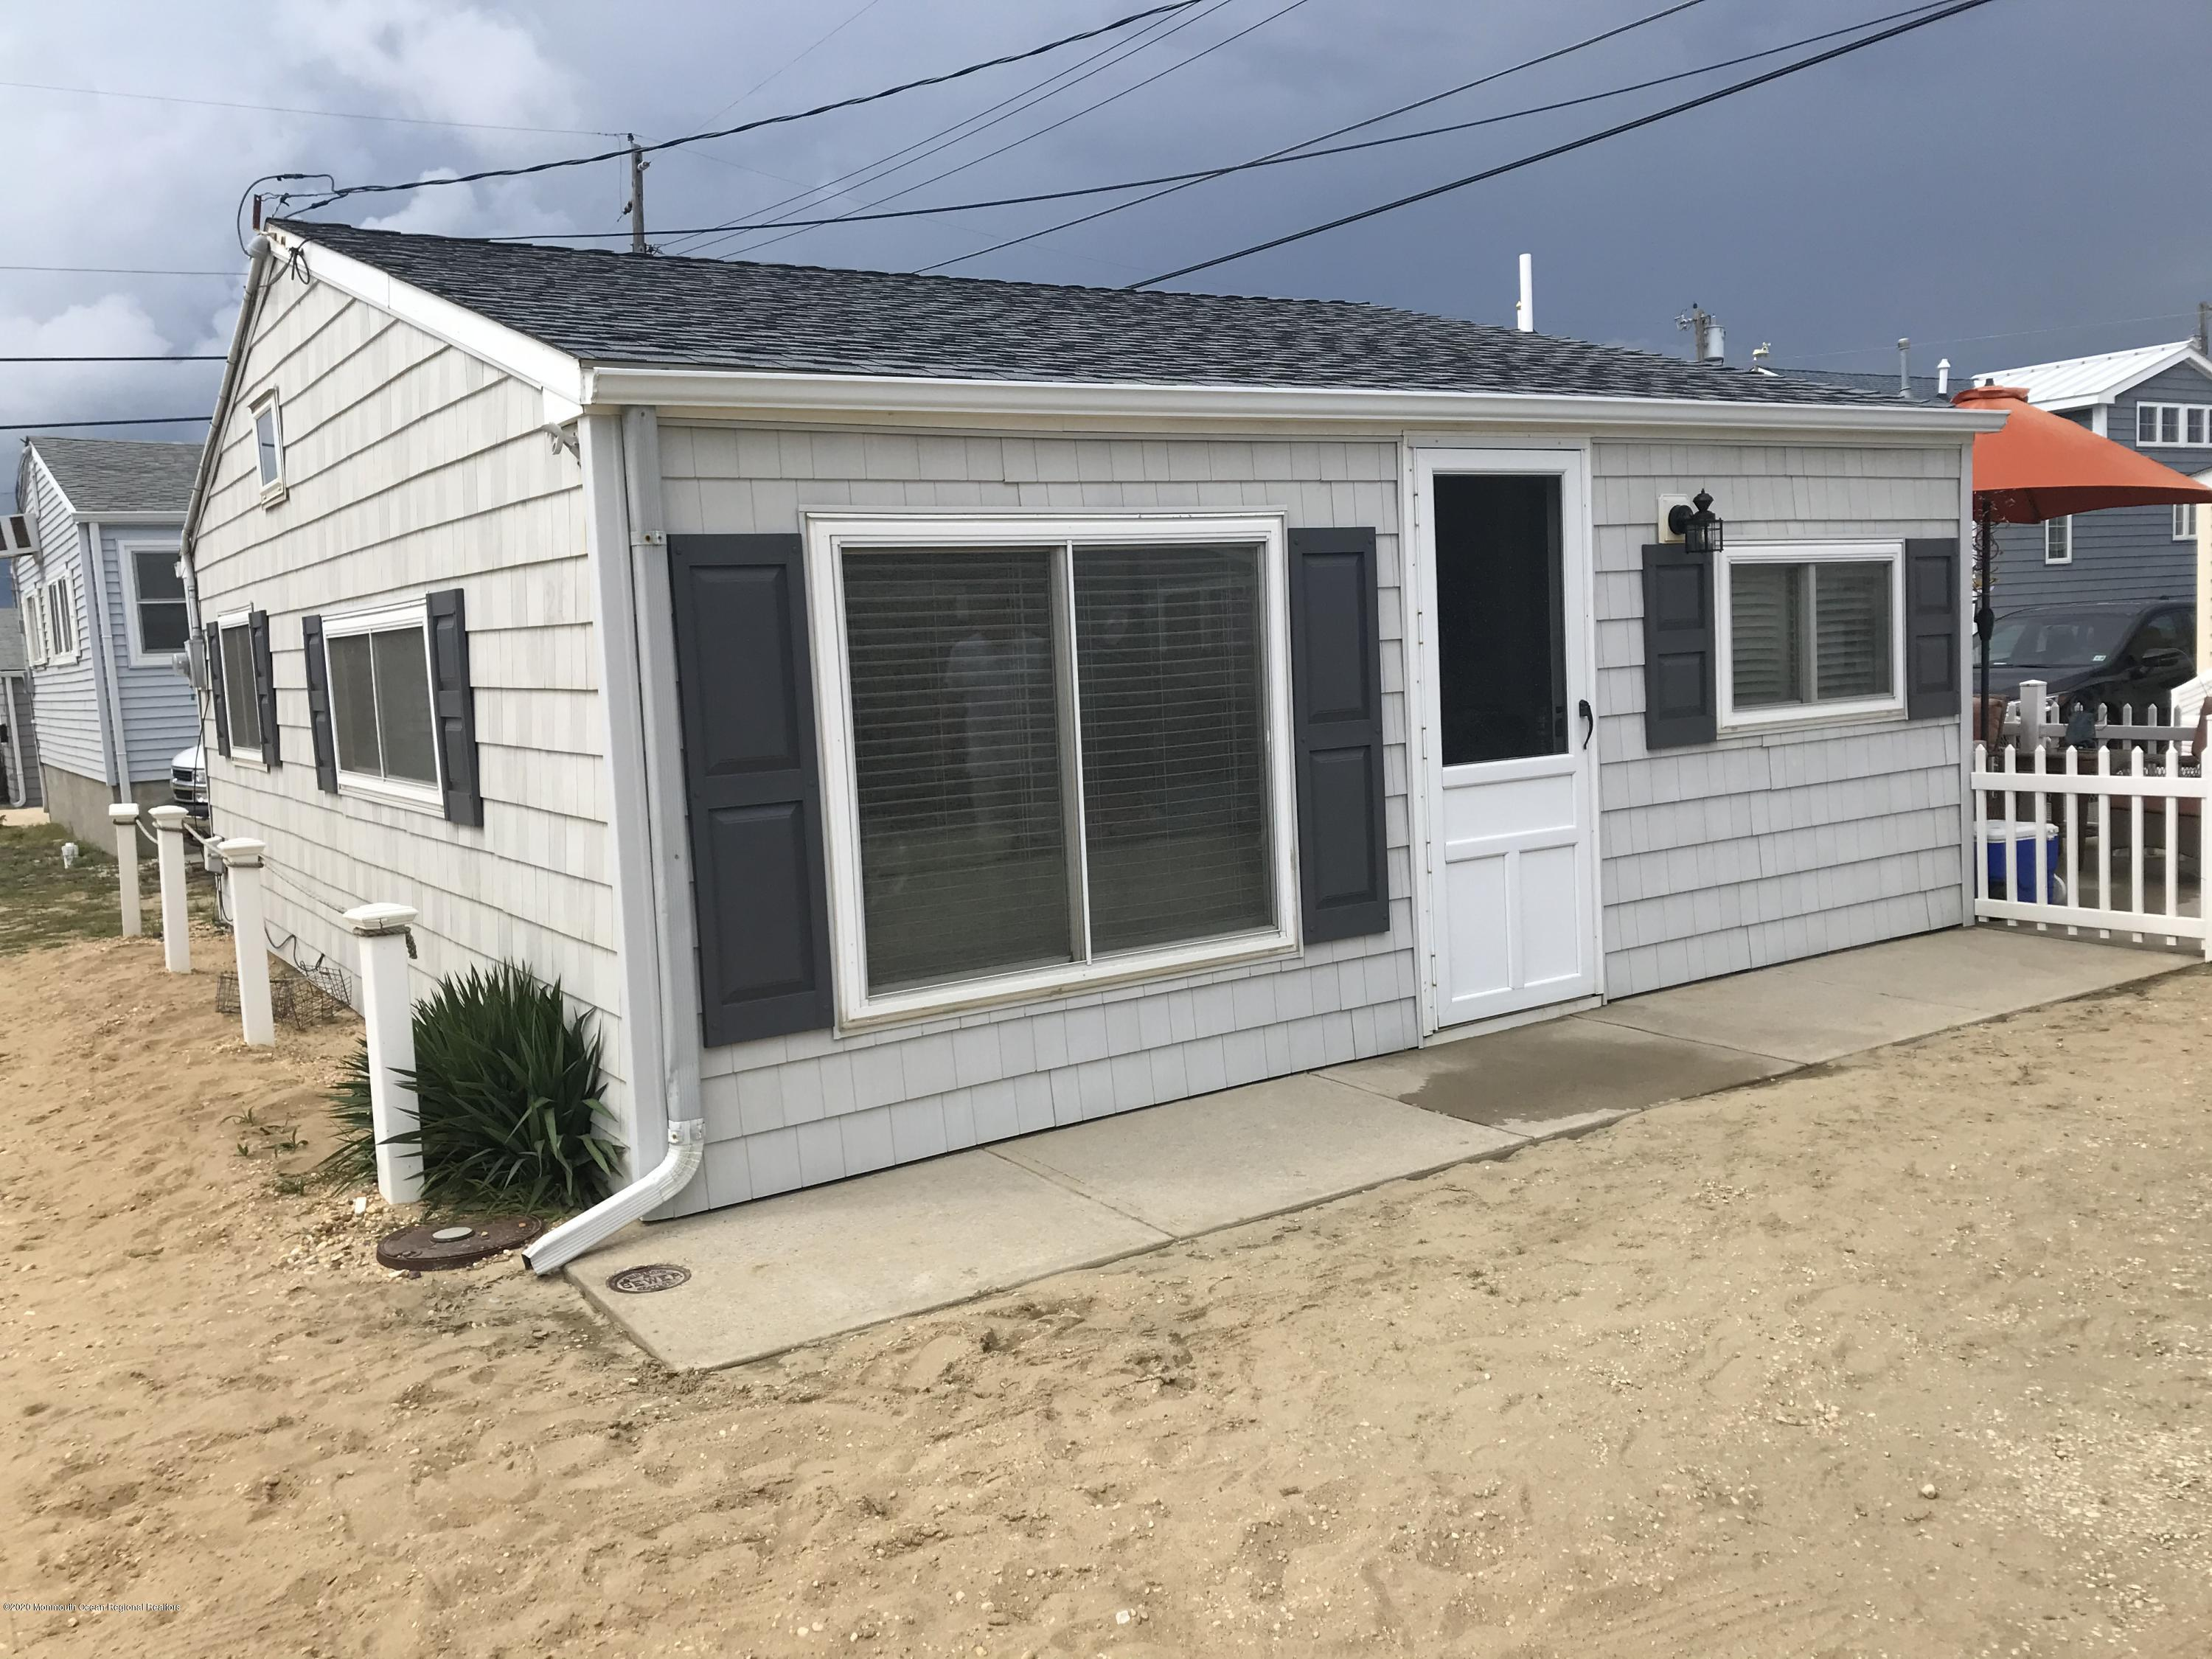 Photo of 26 E Penguin Way, Lavallette, NJ 08735